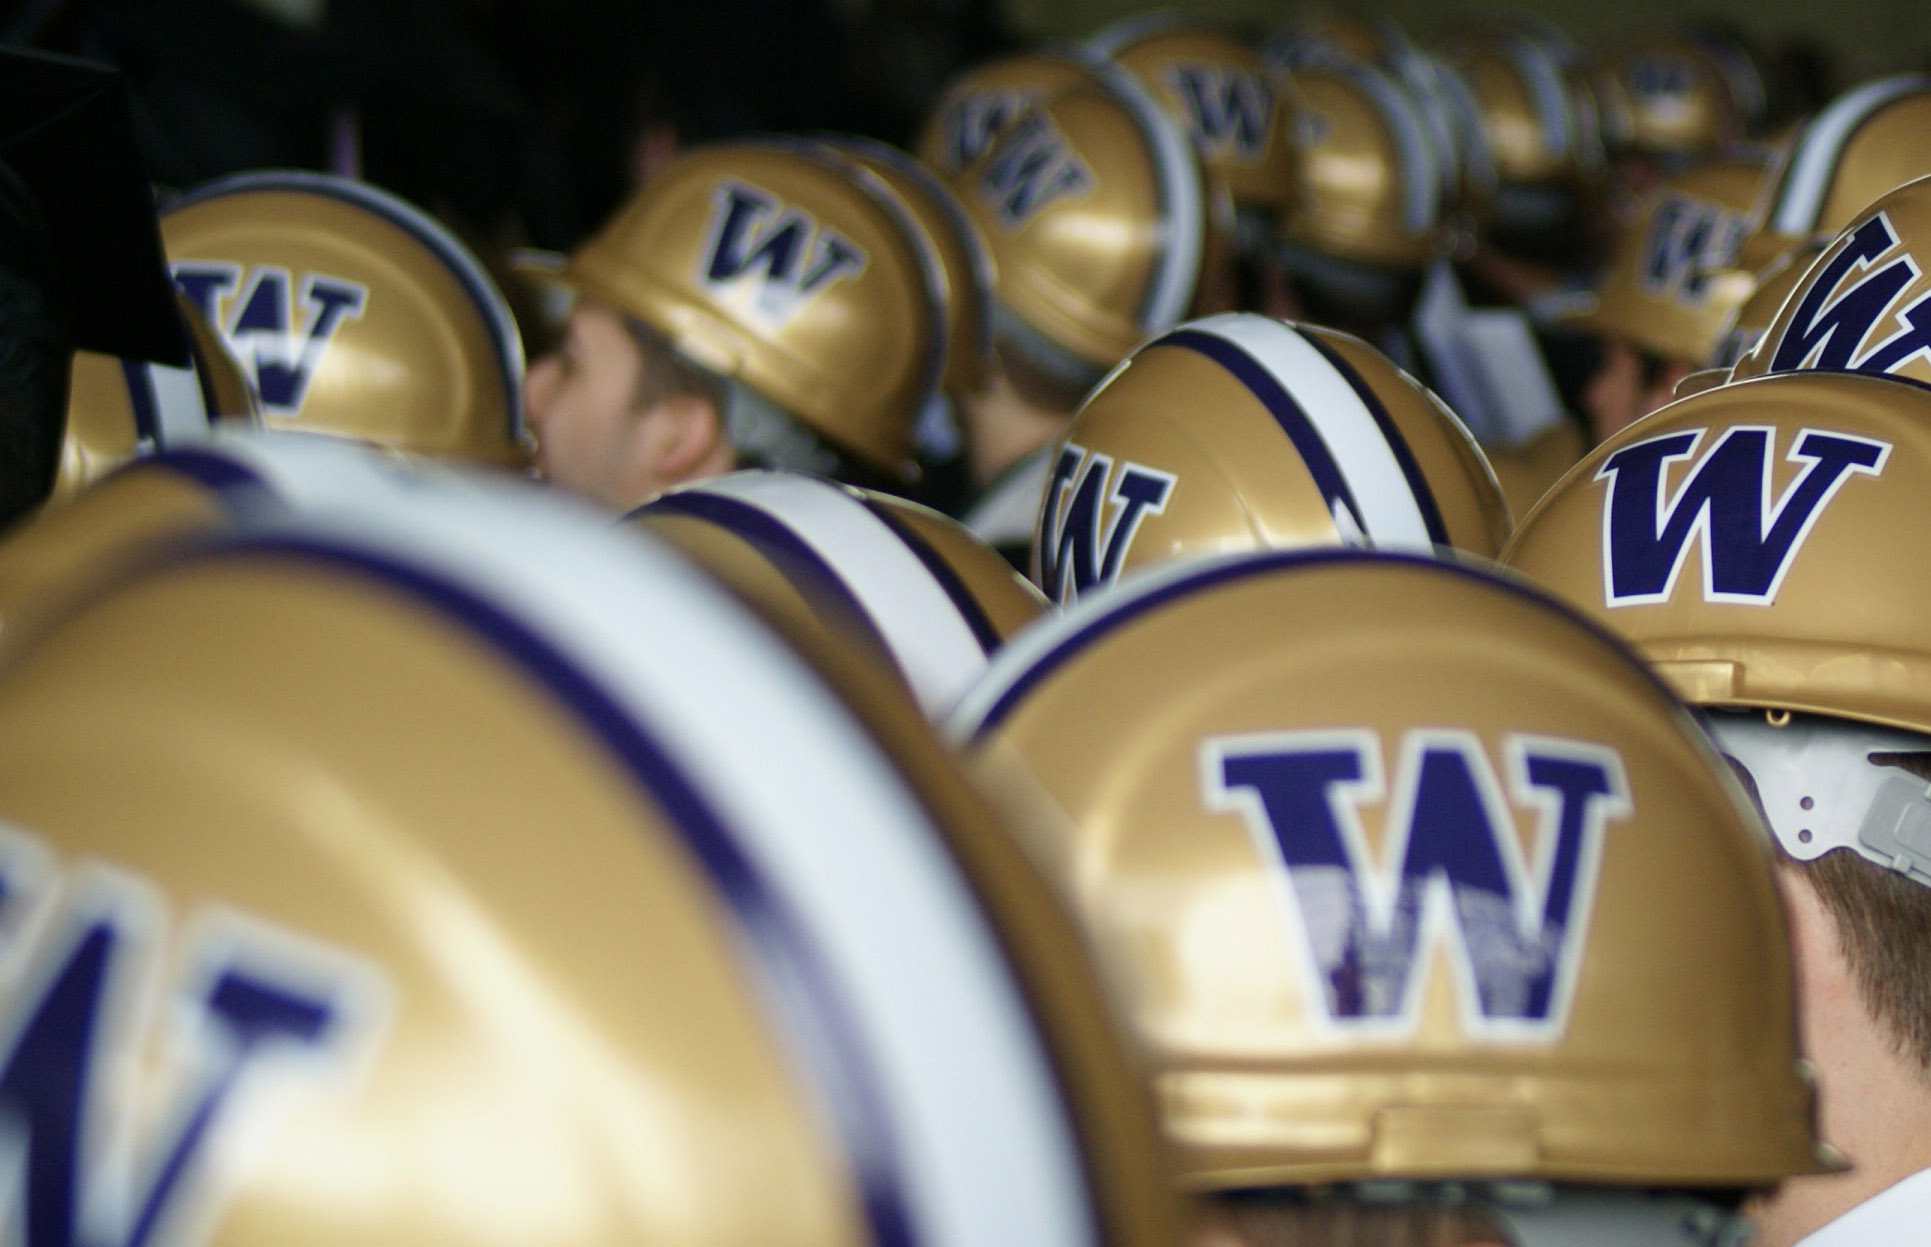 Construction helmets with the UW logo on the side